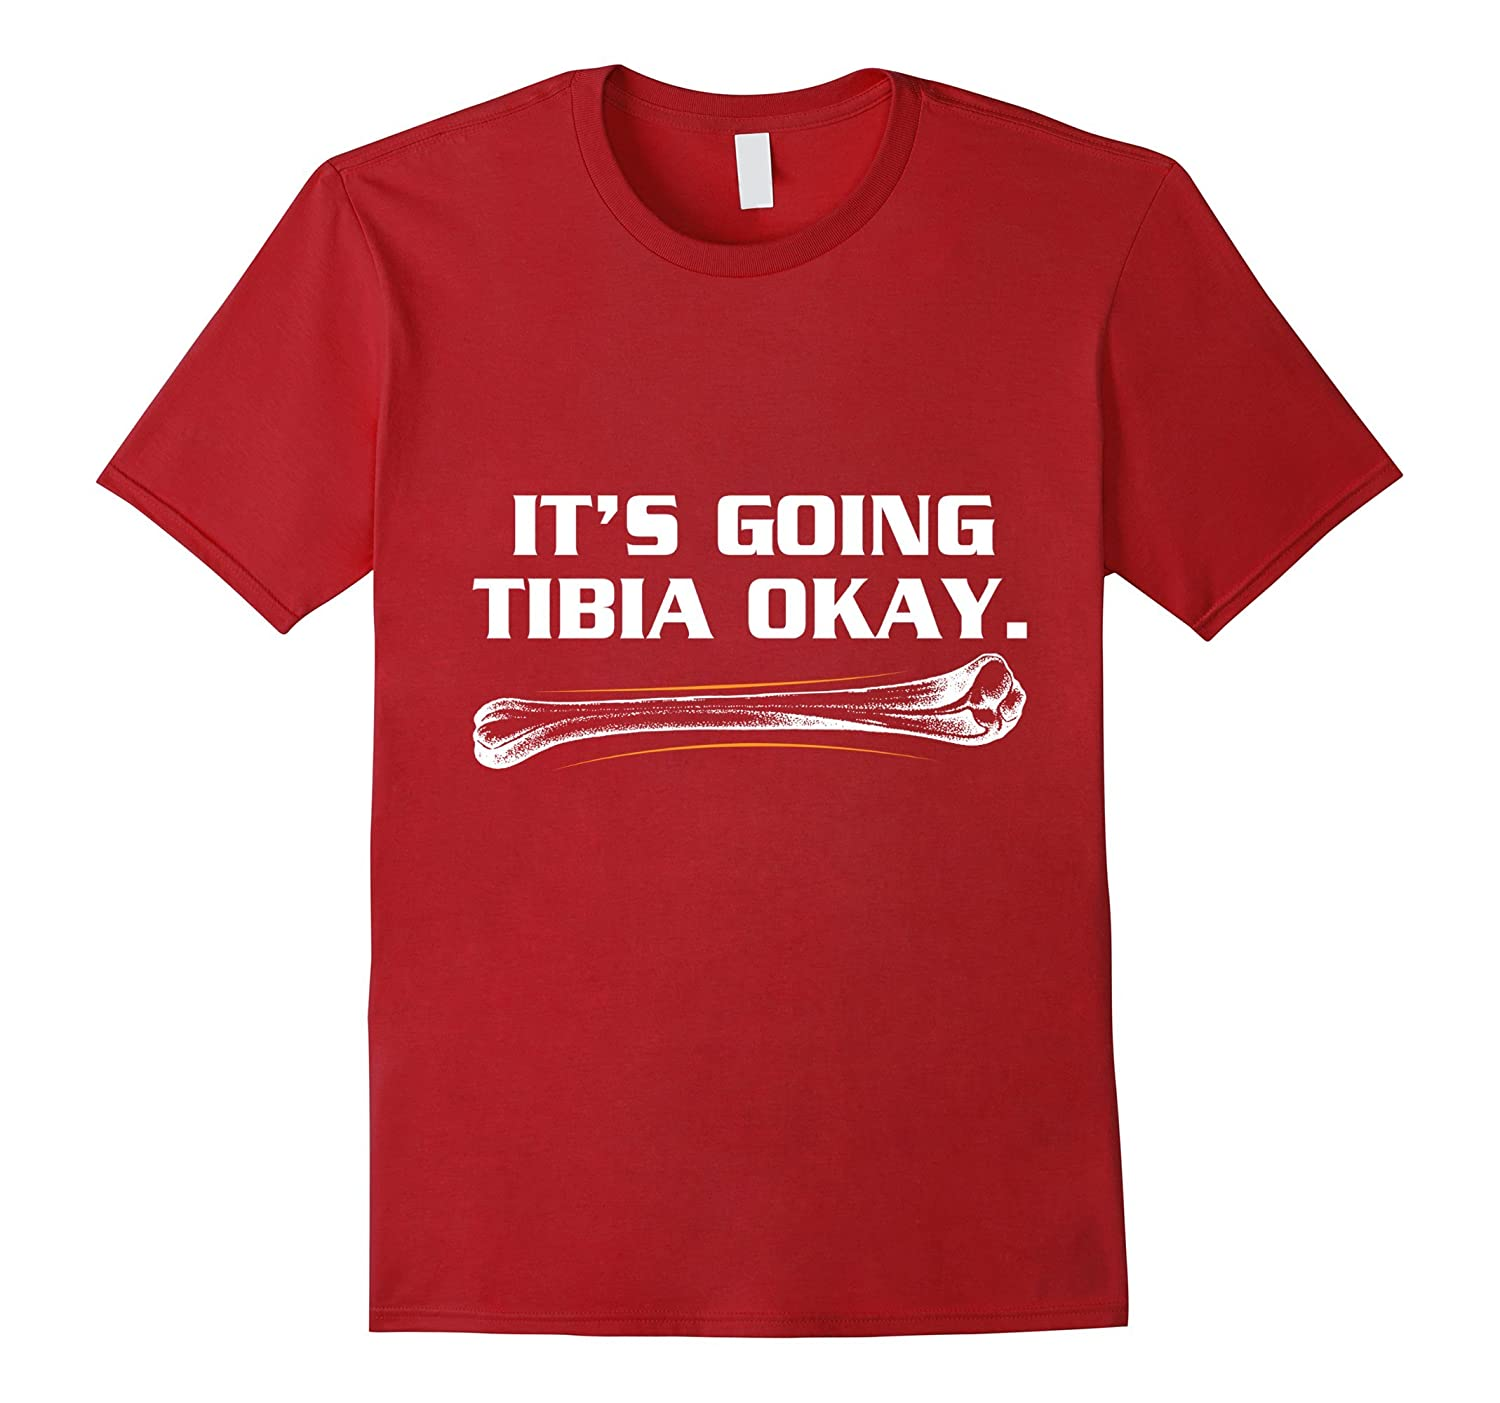 It's Going Tibia Okay Rad Bone Funny T-Shirt